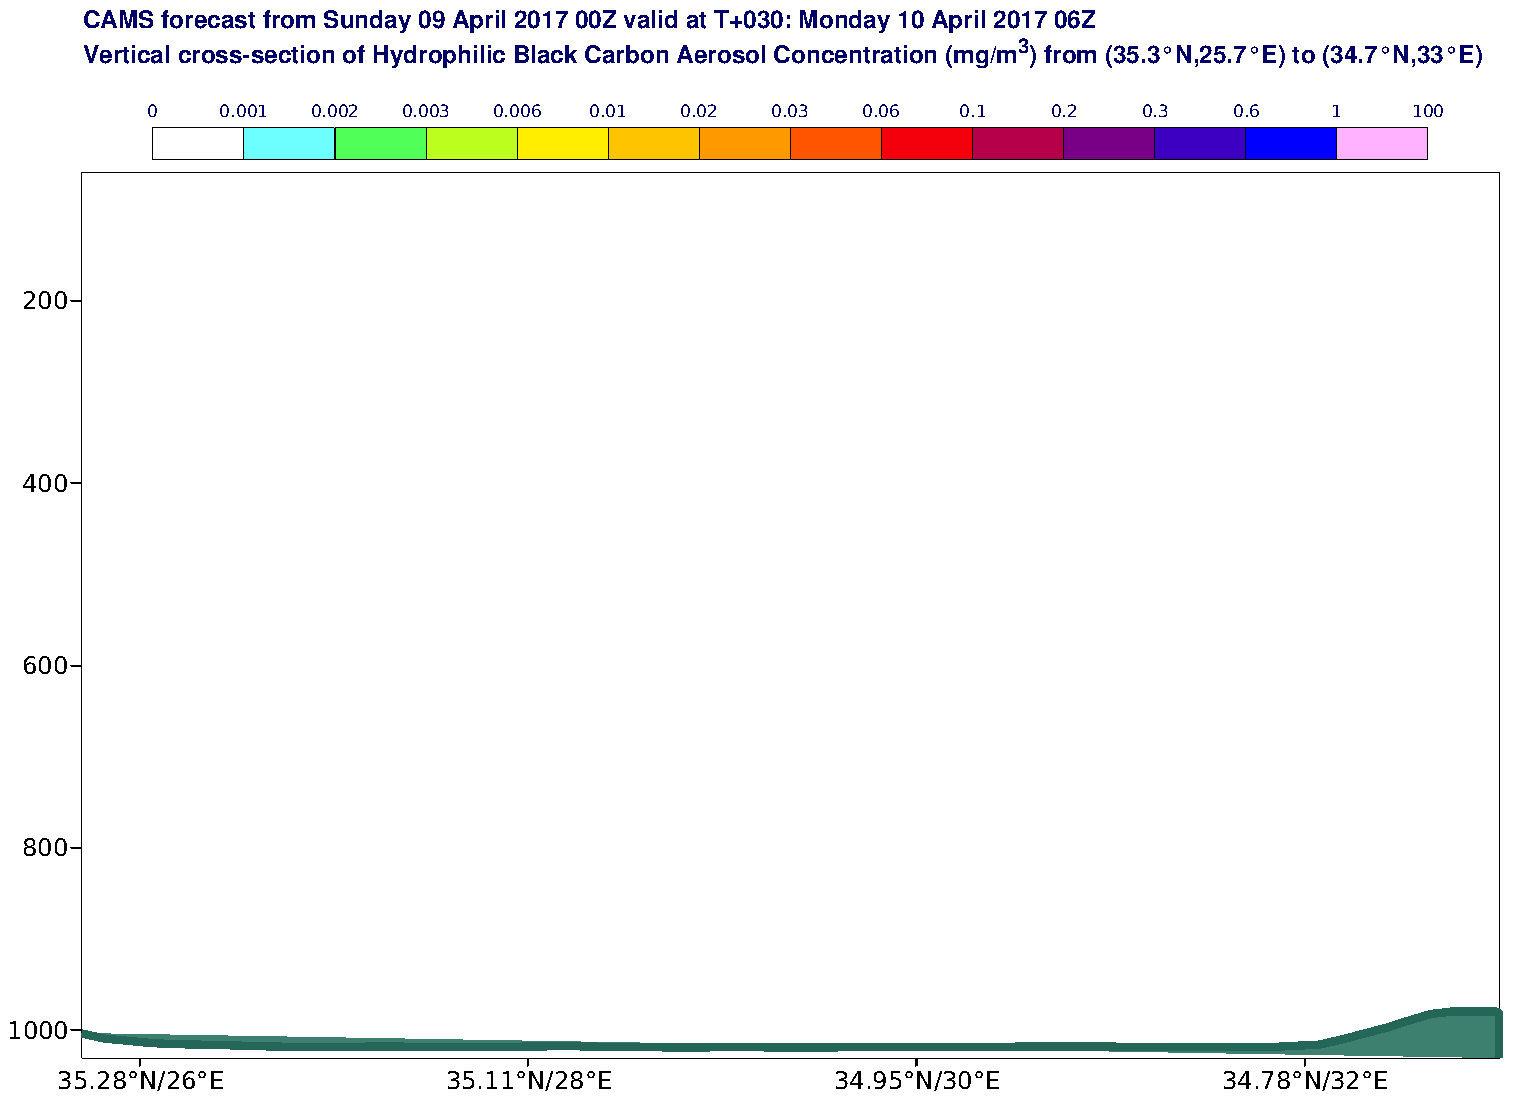 Vertical cross-section of Hydrophilic Black Carbon Aerosol Concentration (mg/m3) valid at T30 - 2017-04-10 06:00